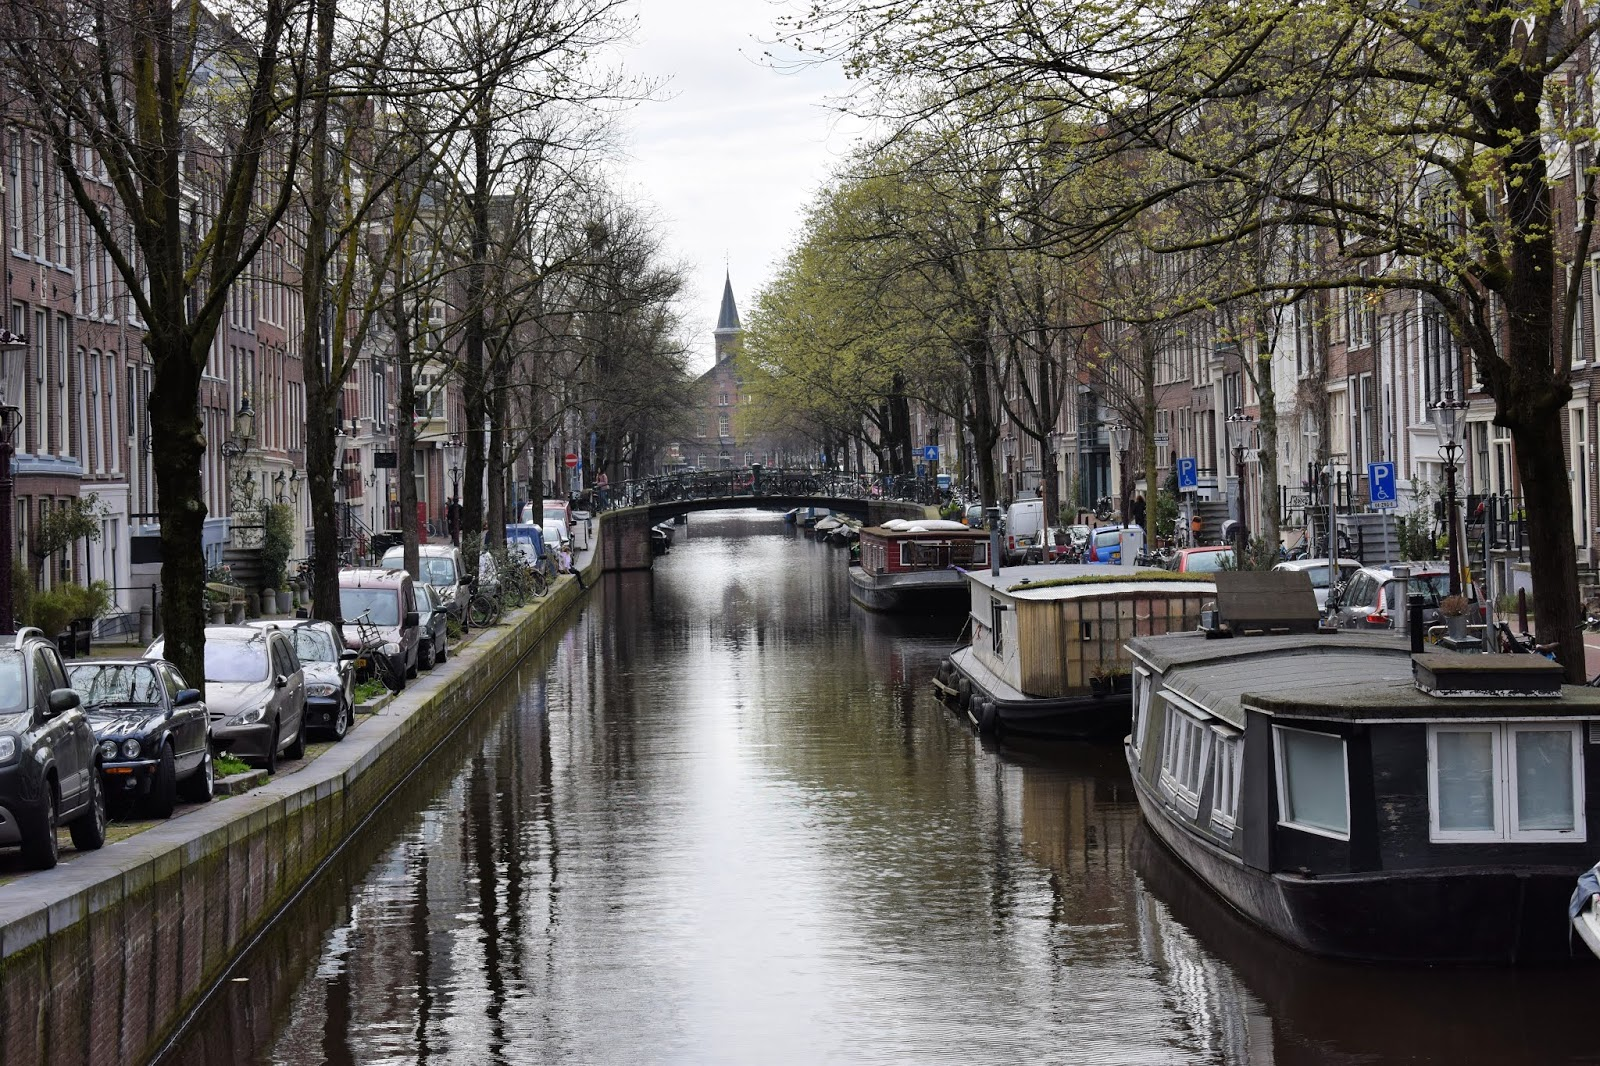 A mini City guide to Amsterdam